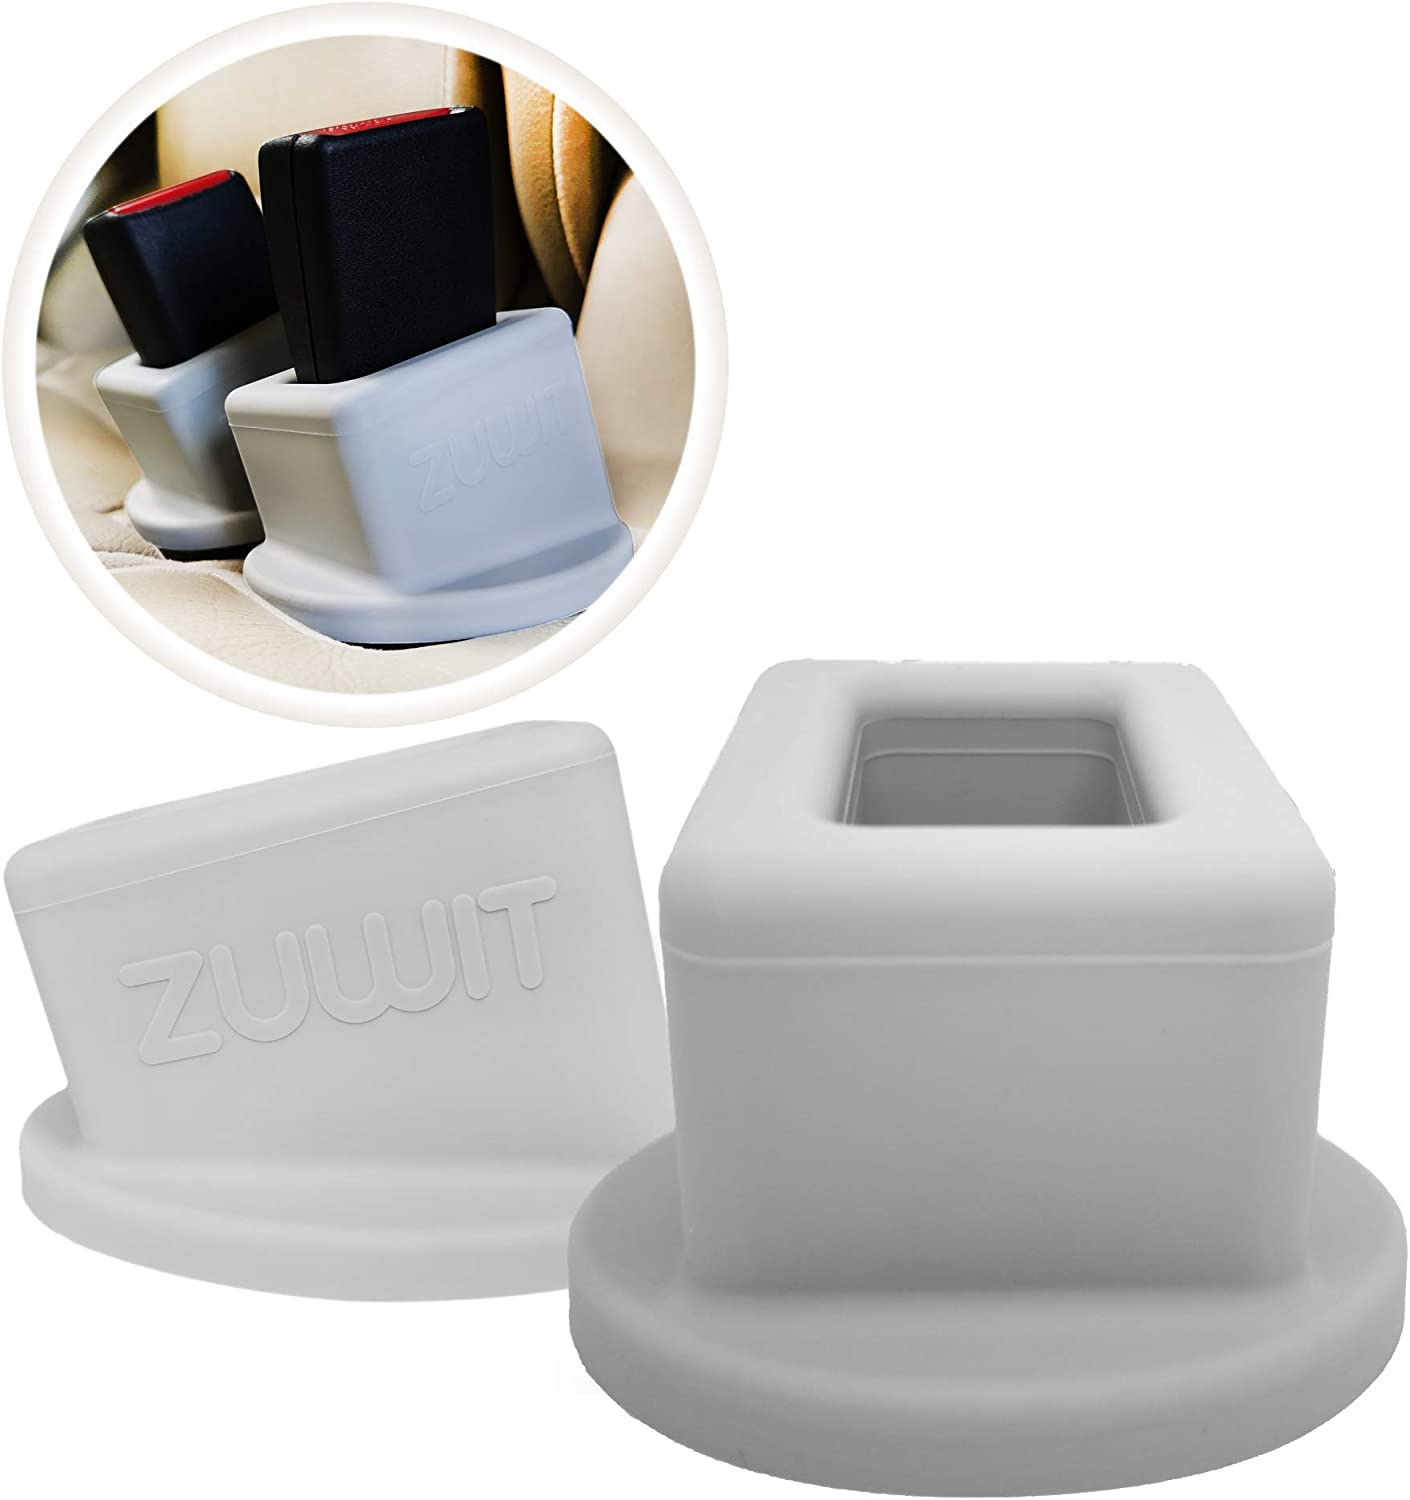 Plug The Seat Belt in with Only One Hand Grey and Passengers with Special Needs Easy Access to The Buckles of Rear Seats ZUWIT Seat Belt Buckle Holder Friendly to Kids